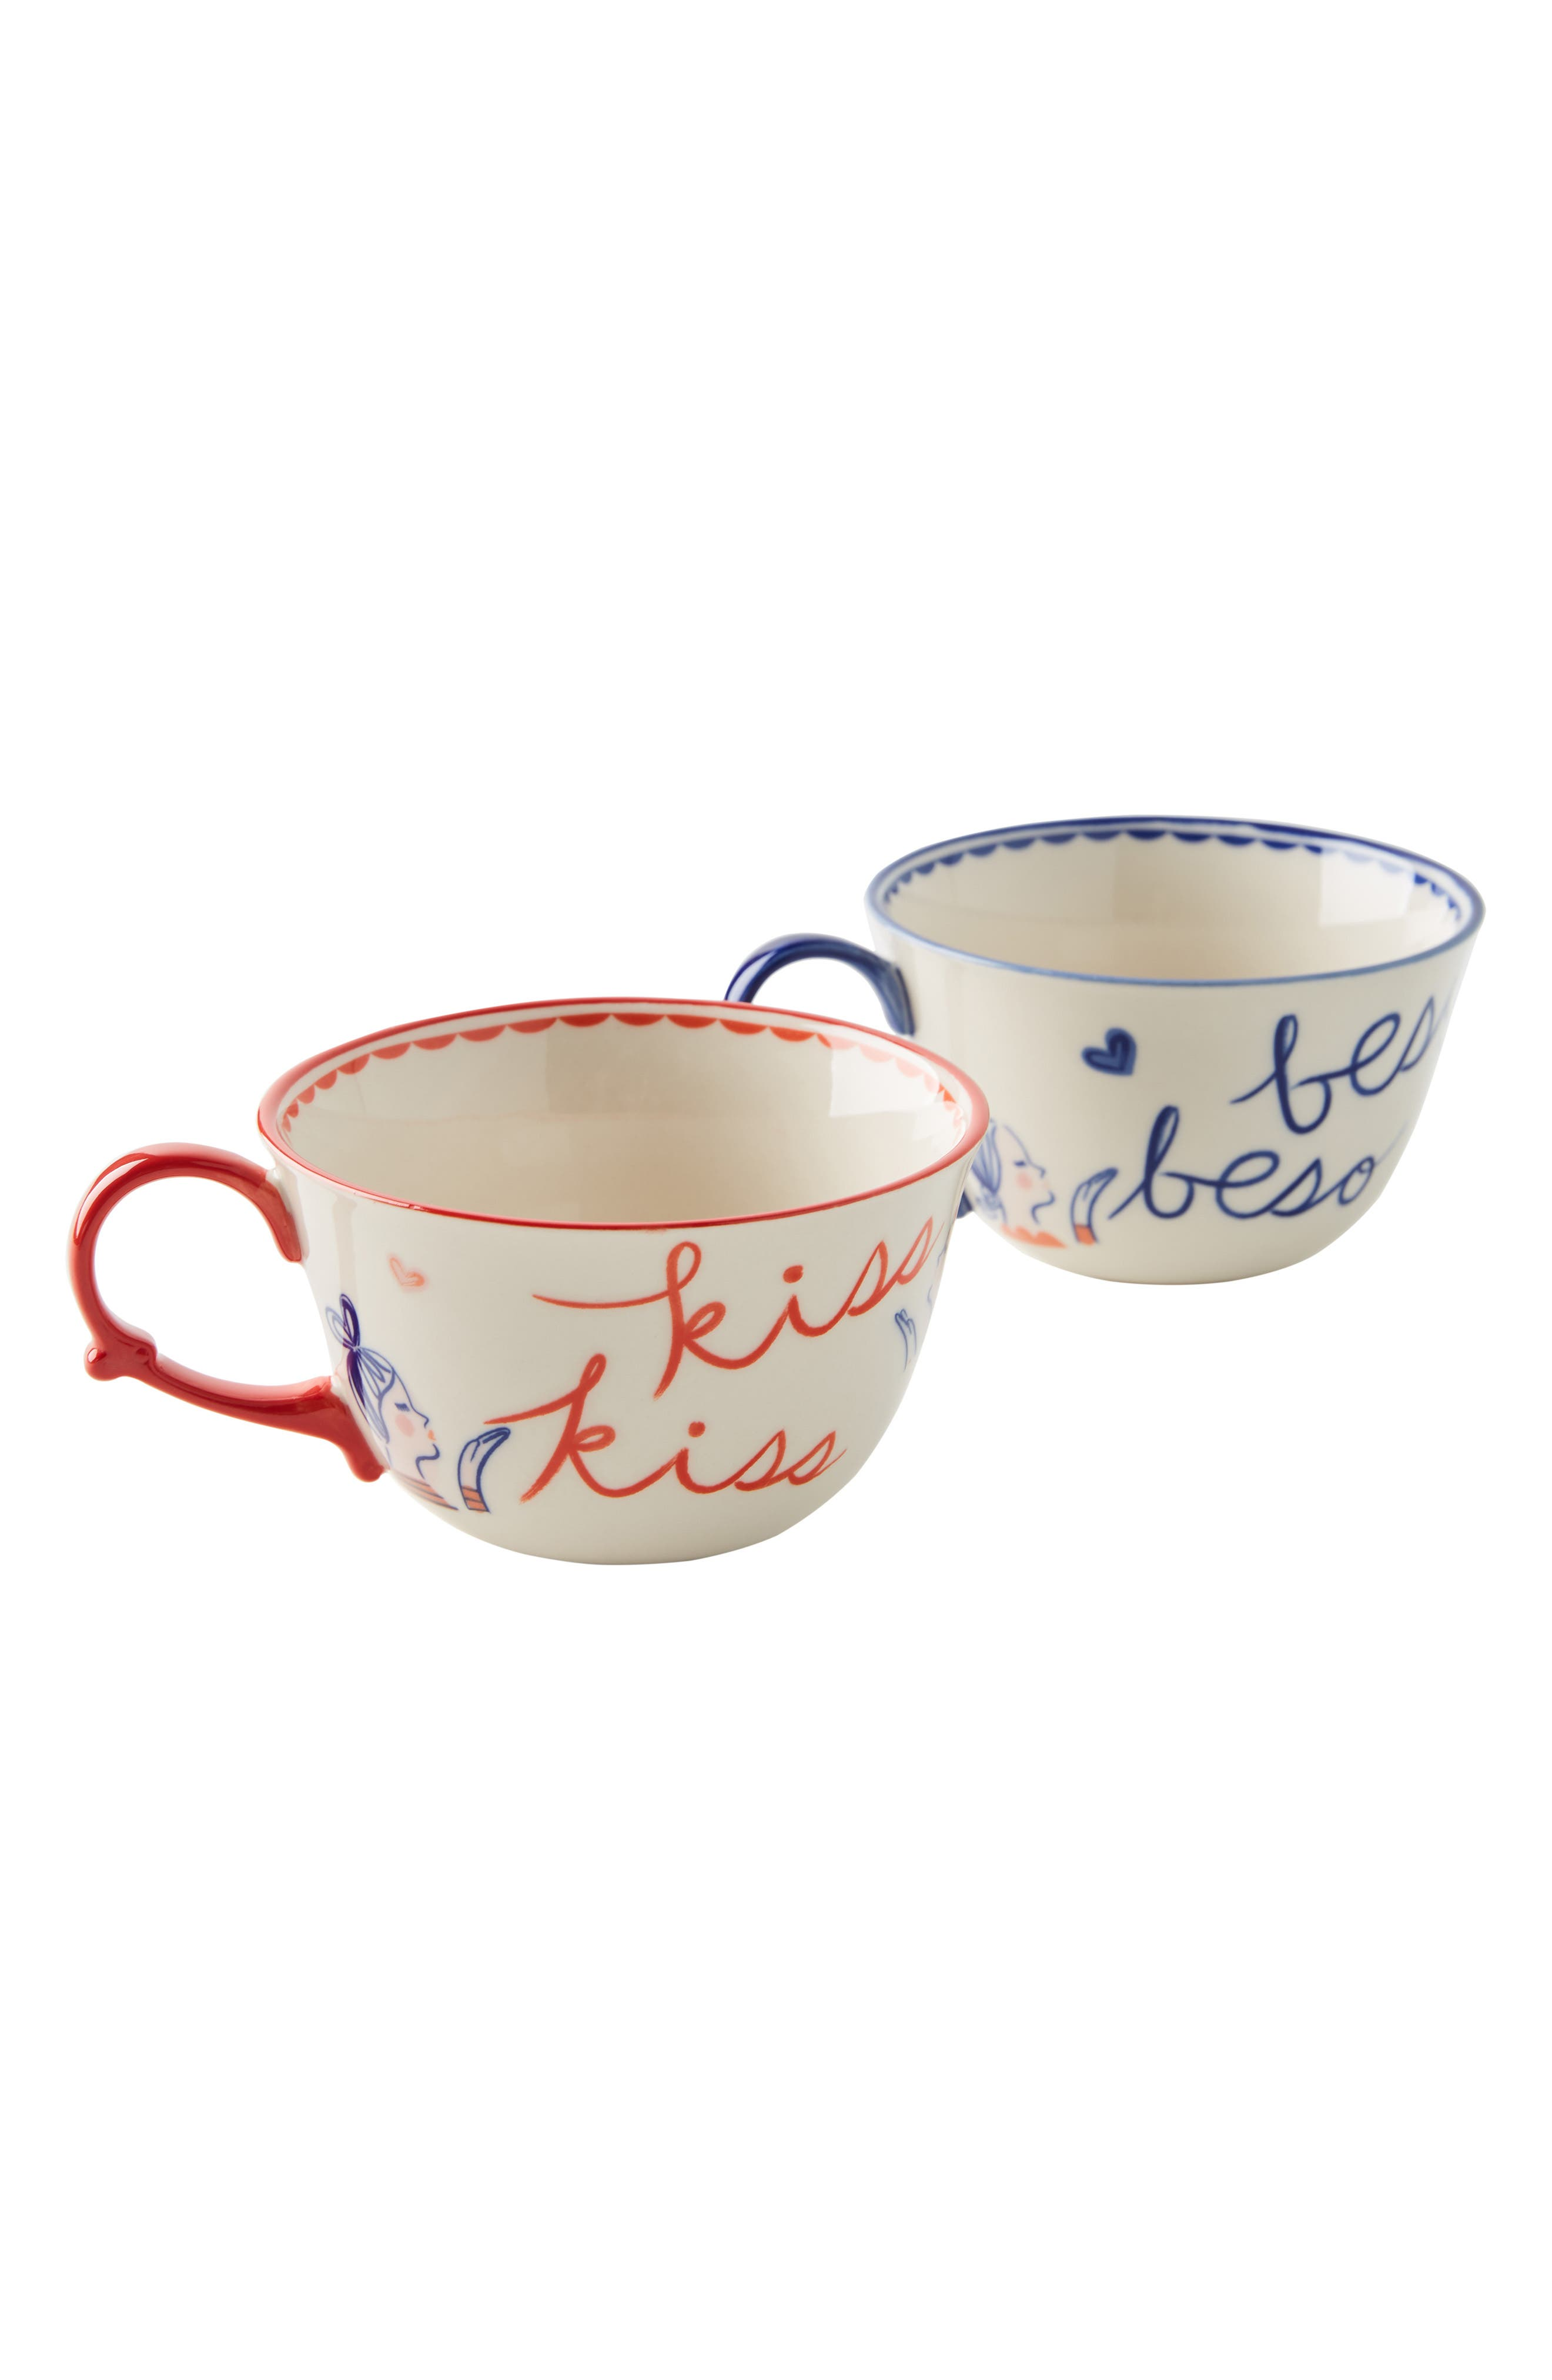 Libby VanderPloeg Set of 2 Mugs,                             Alternate thumbnail 4, color,                             BLUE COMBO